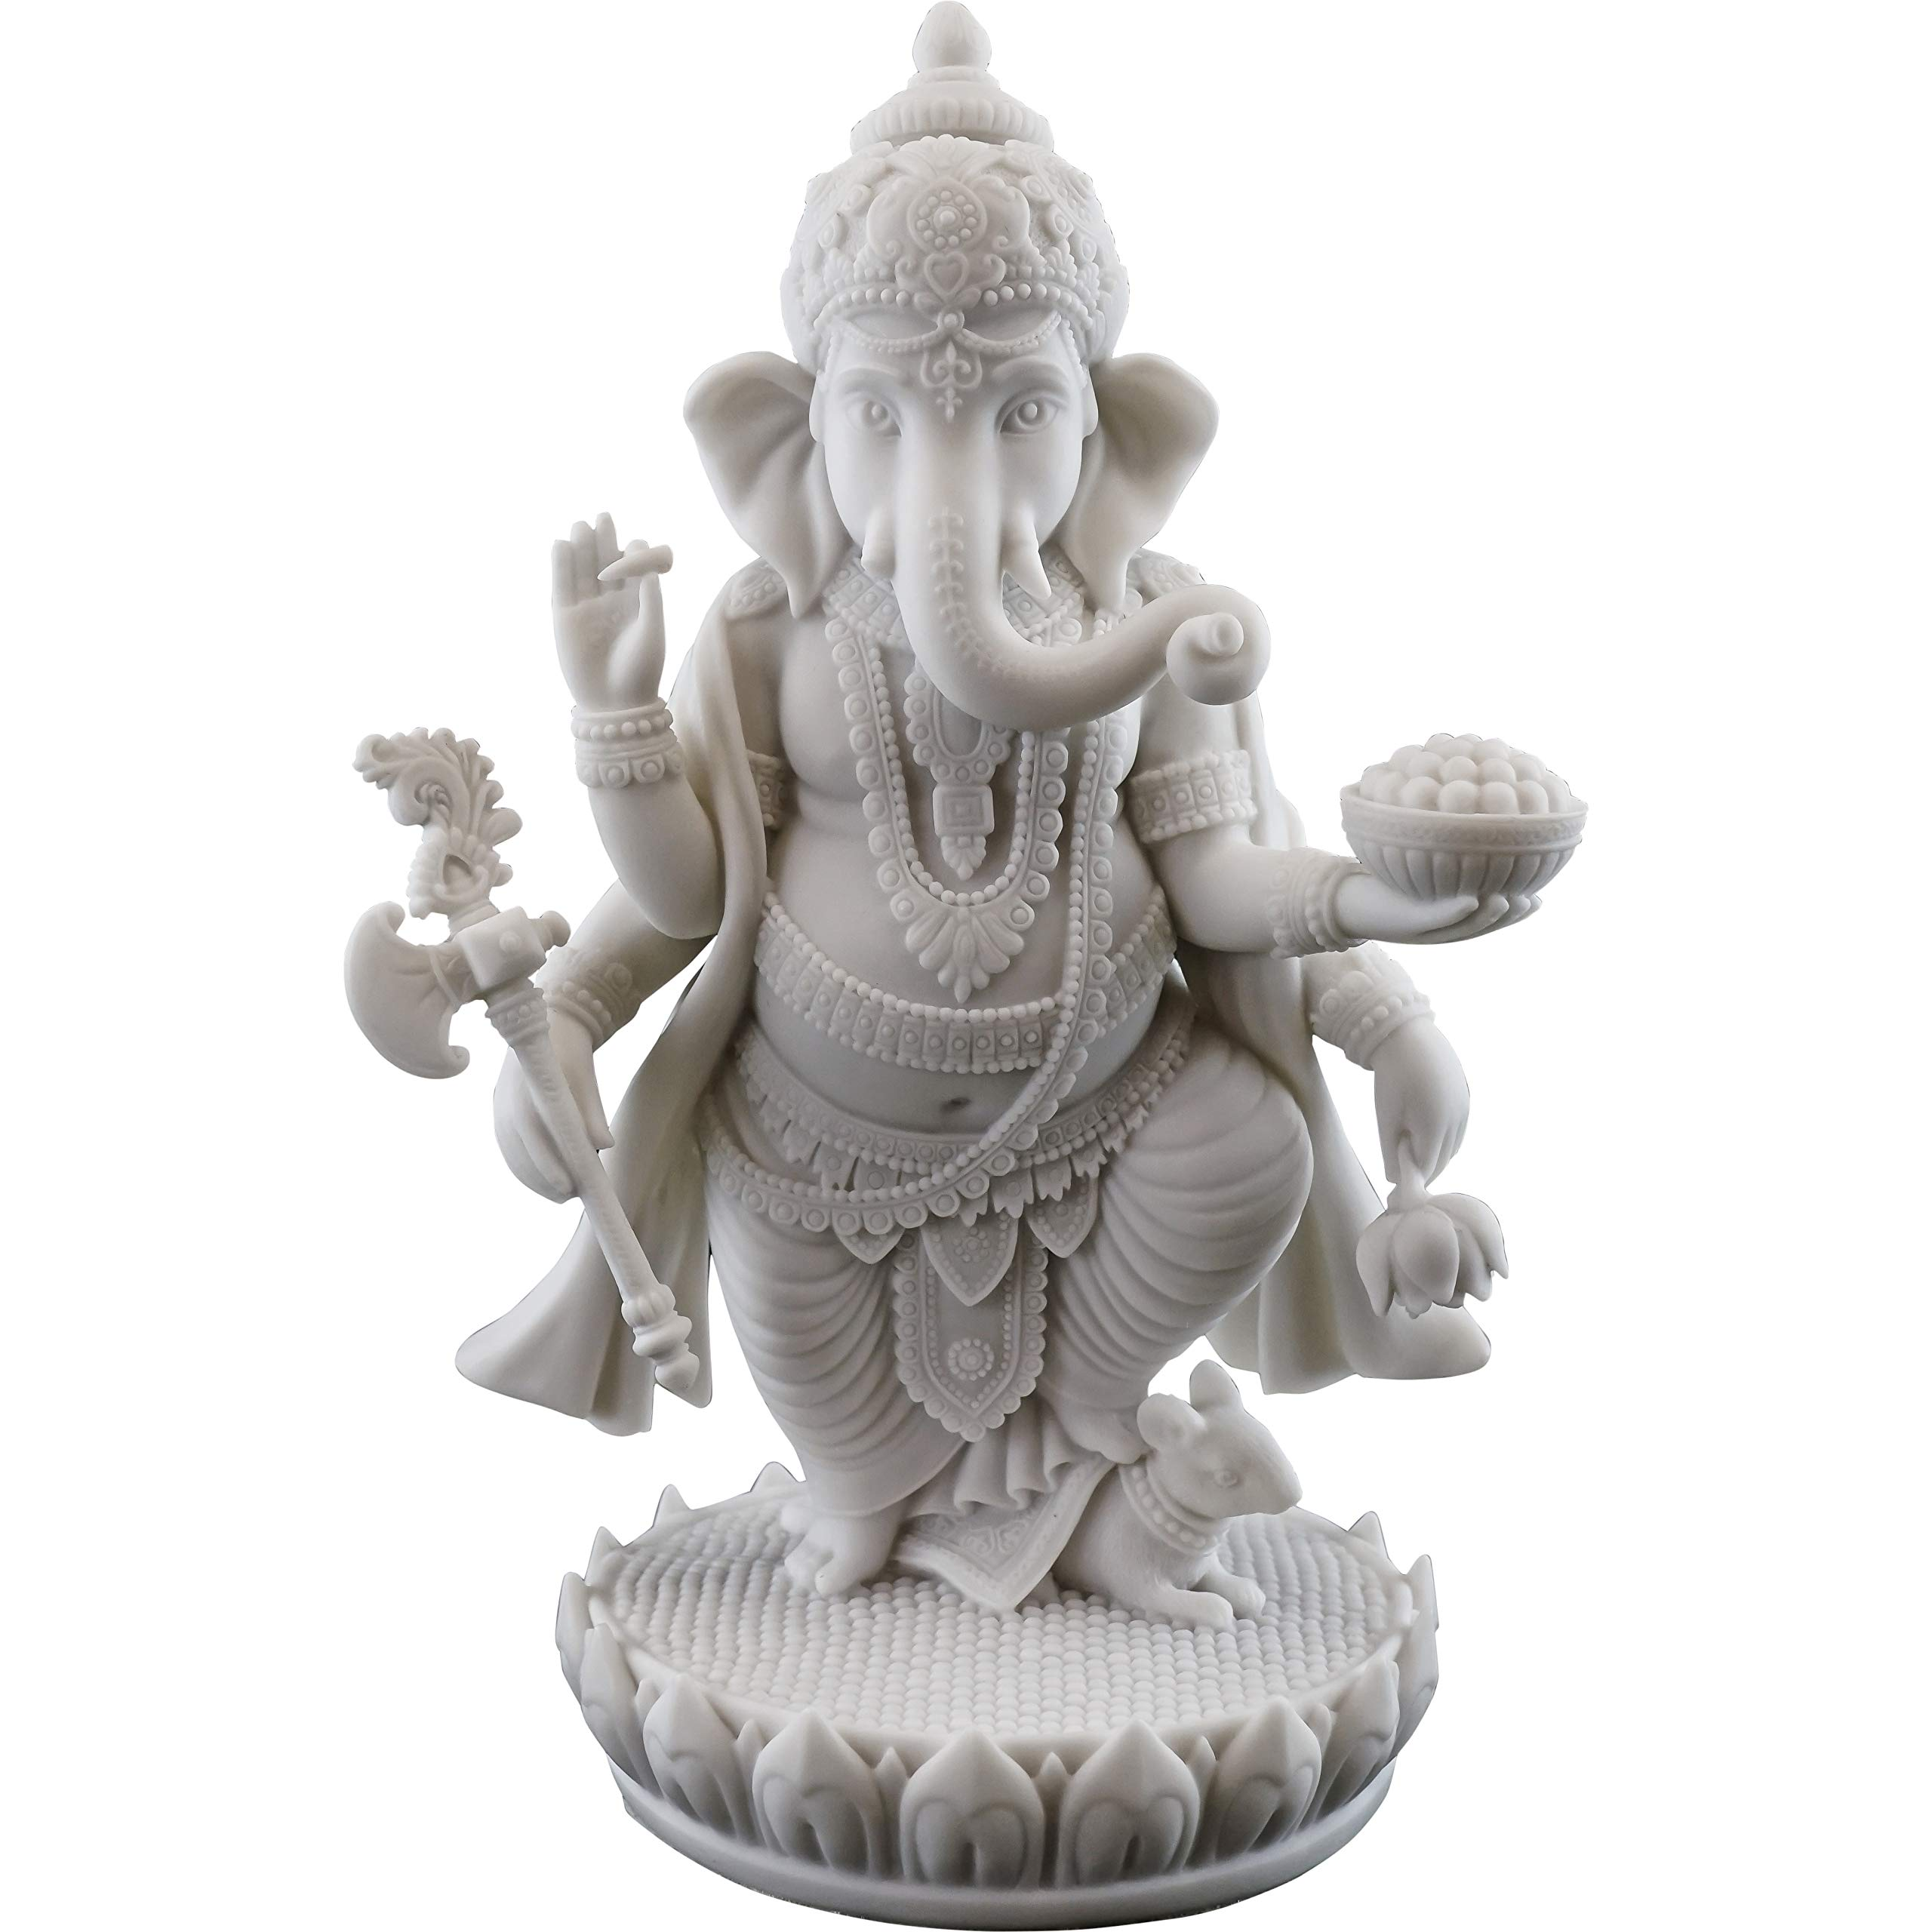 Top Collection 7.5'' H 4.75'' Standing Ganesh Statue in White Marble Finish - Hindu Lord of Success Sculpture by Top Collection